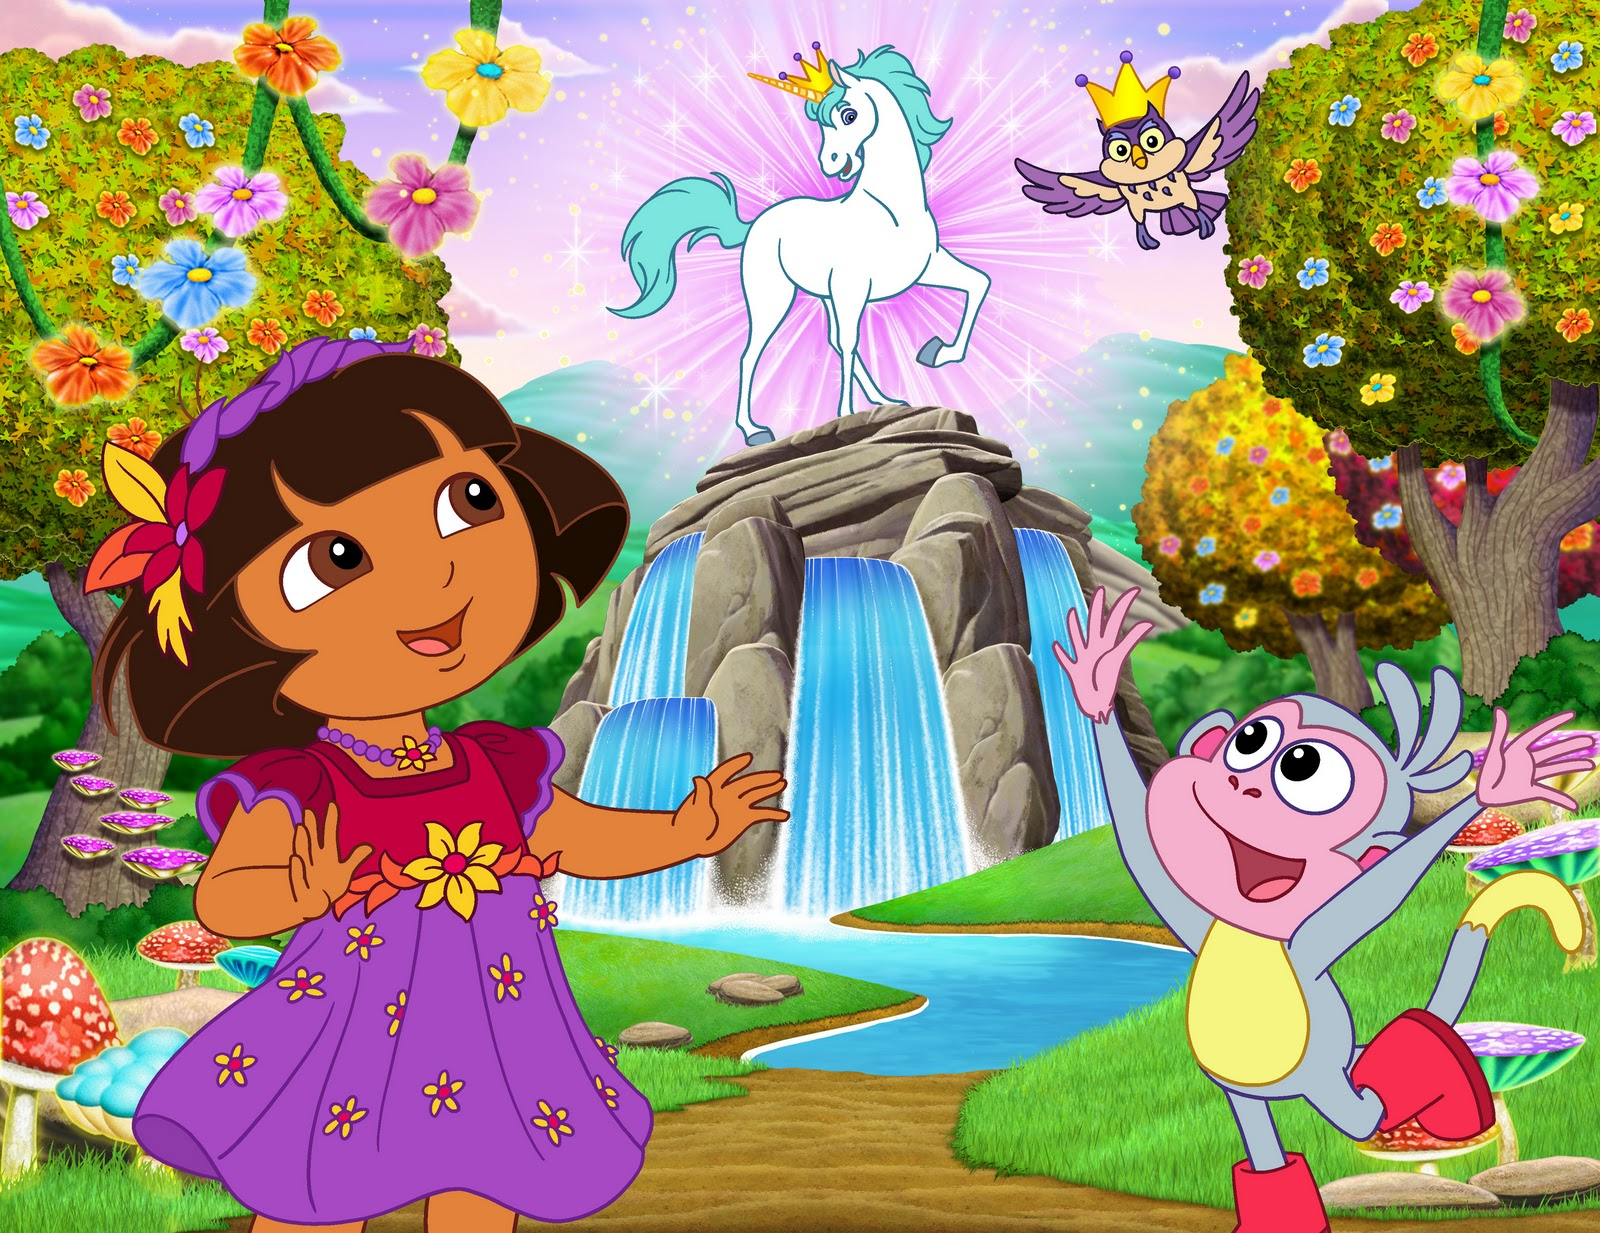 Dora the Explorer r wallpaper 1600x1233 184636 1600x1233